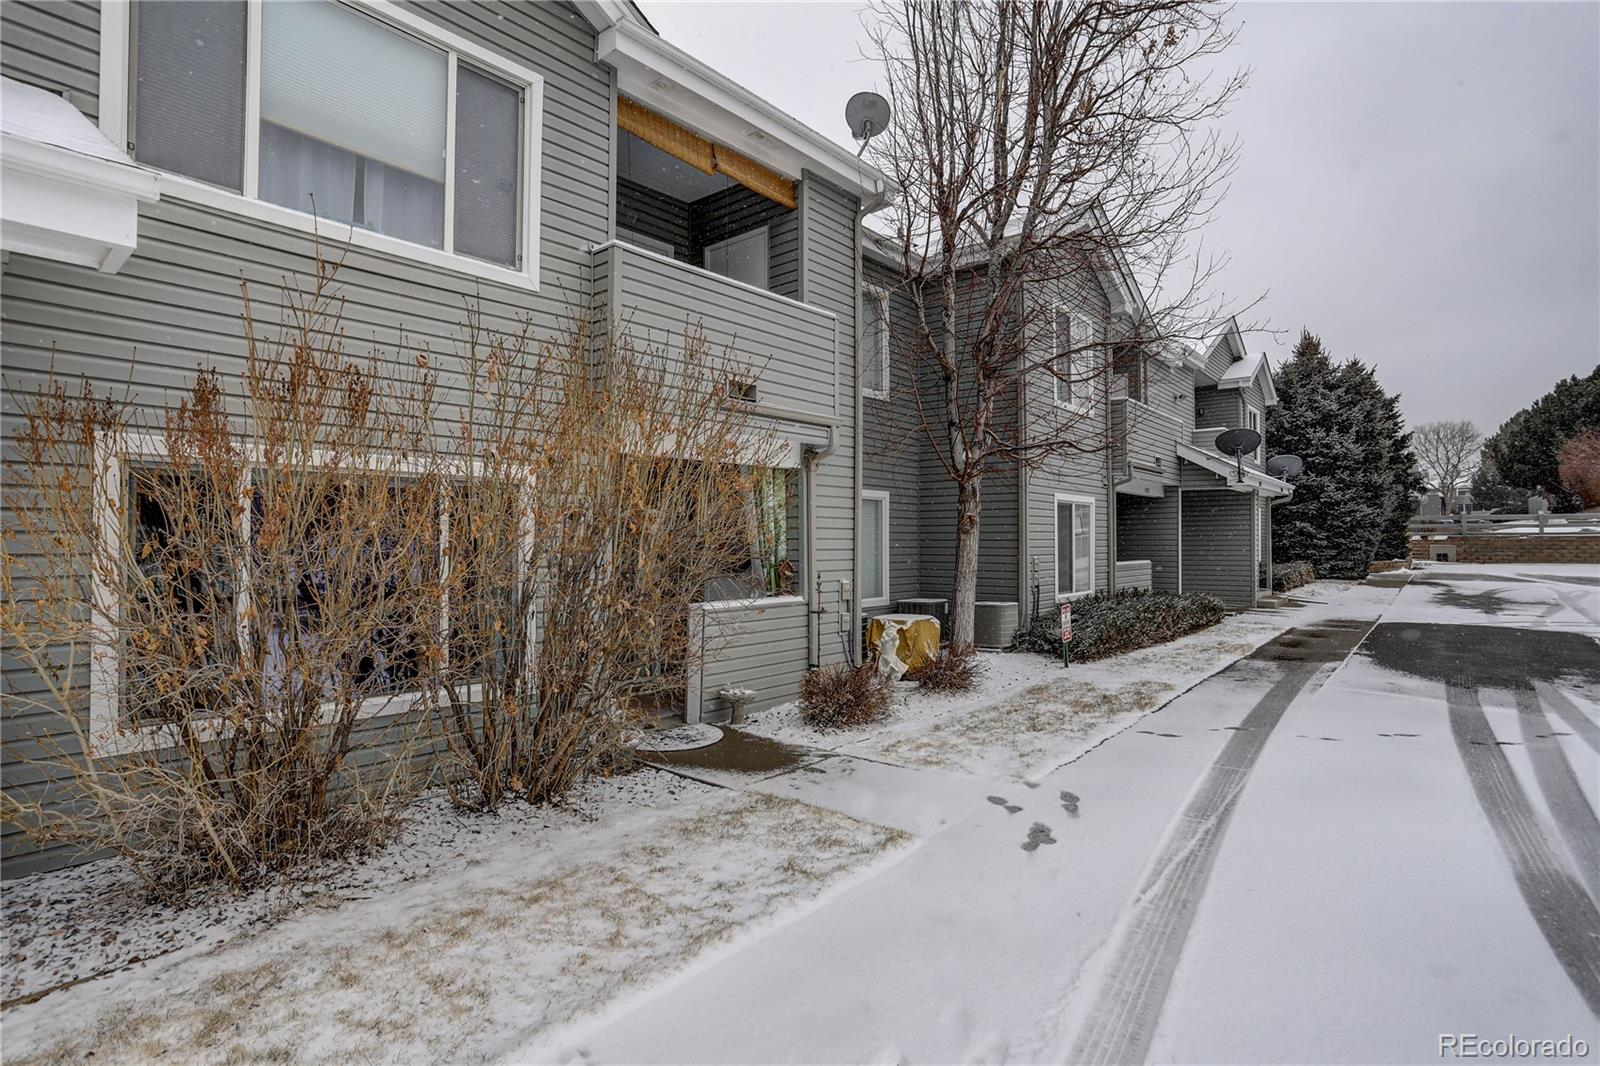 MLS# 6342814 - 14 - 911 S Zeno Way #106, Aurora, CO 80017